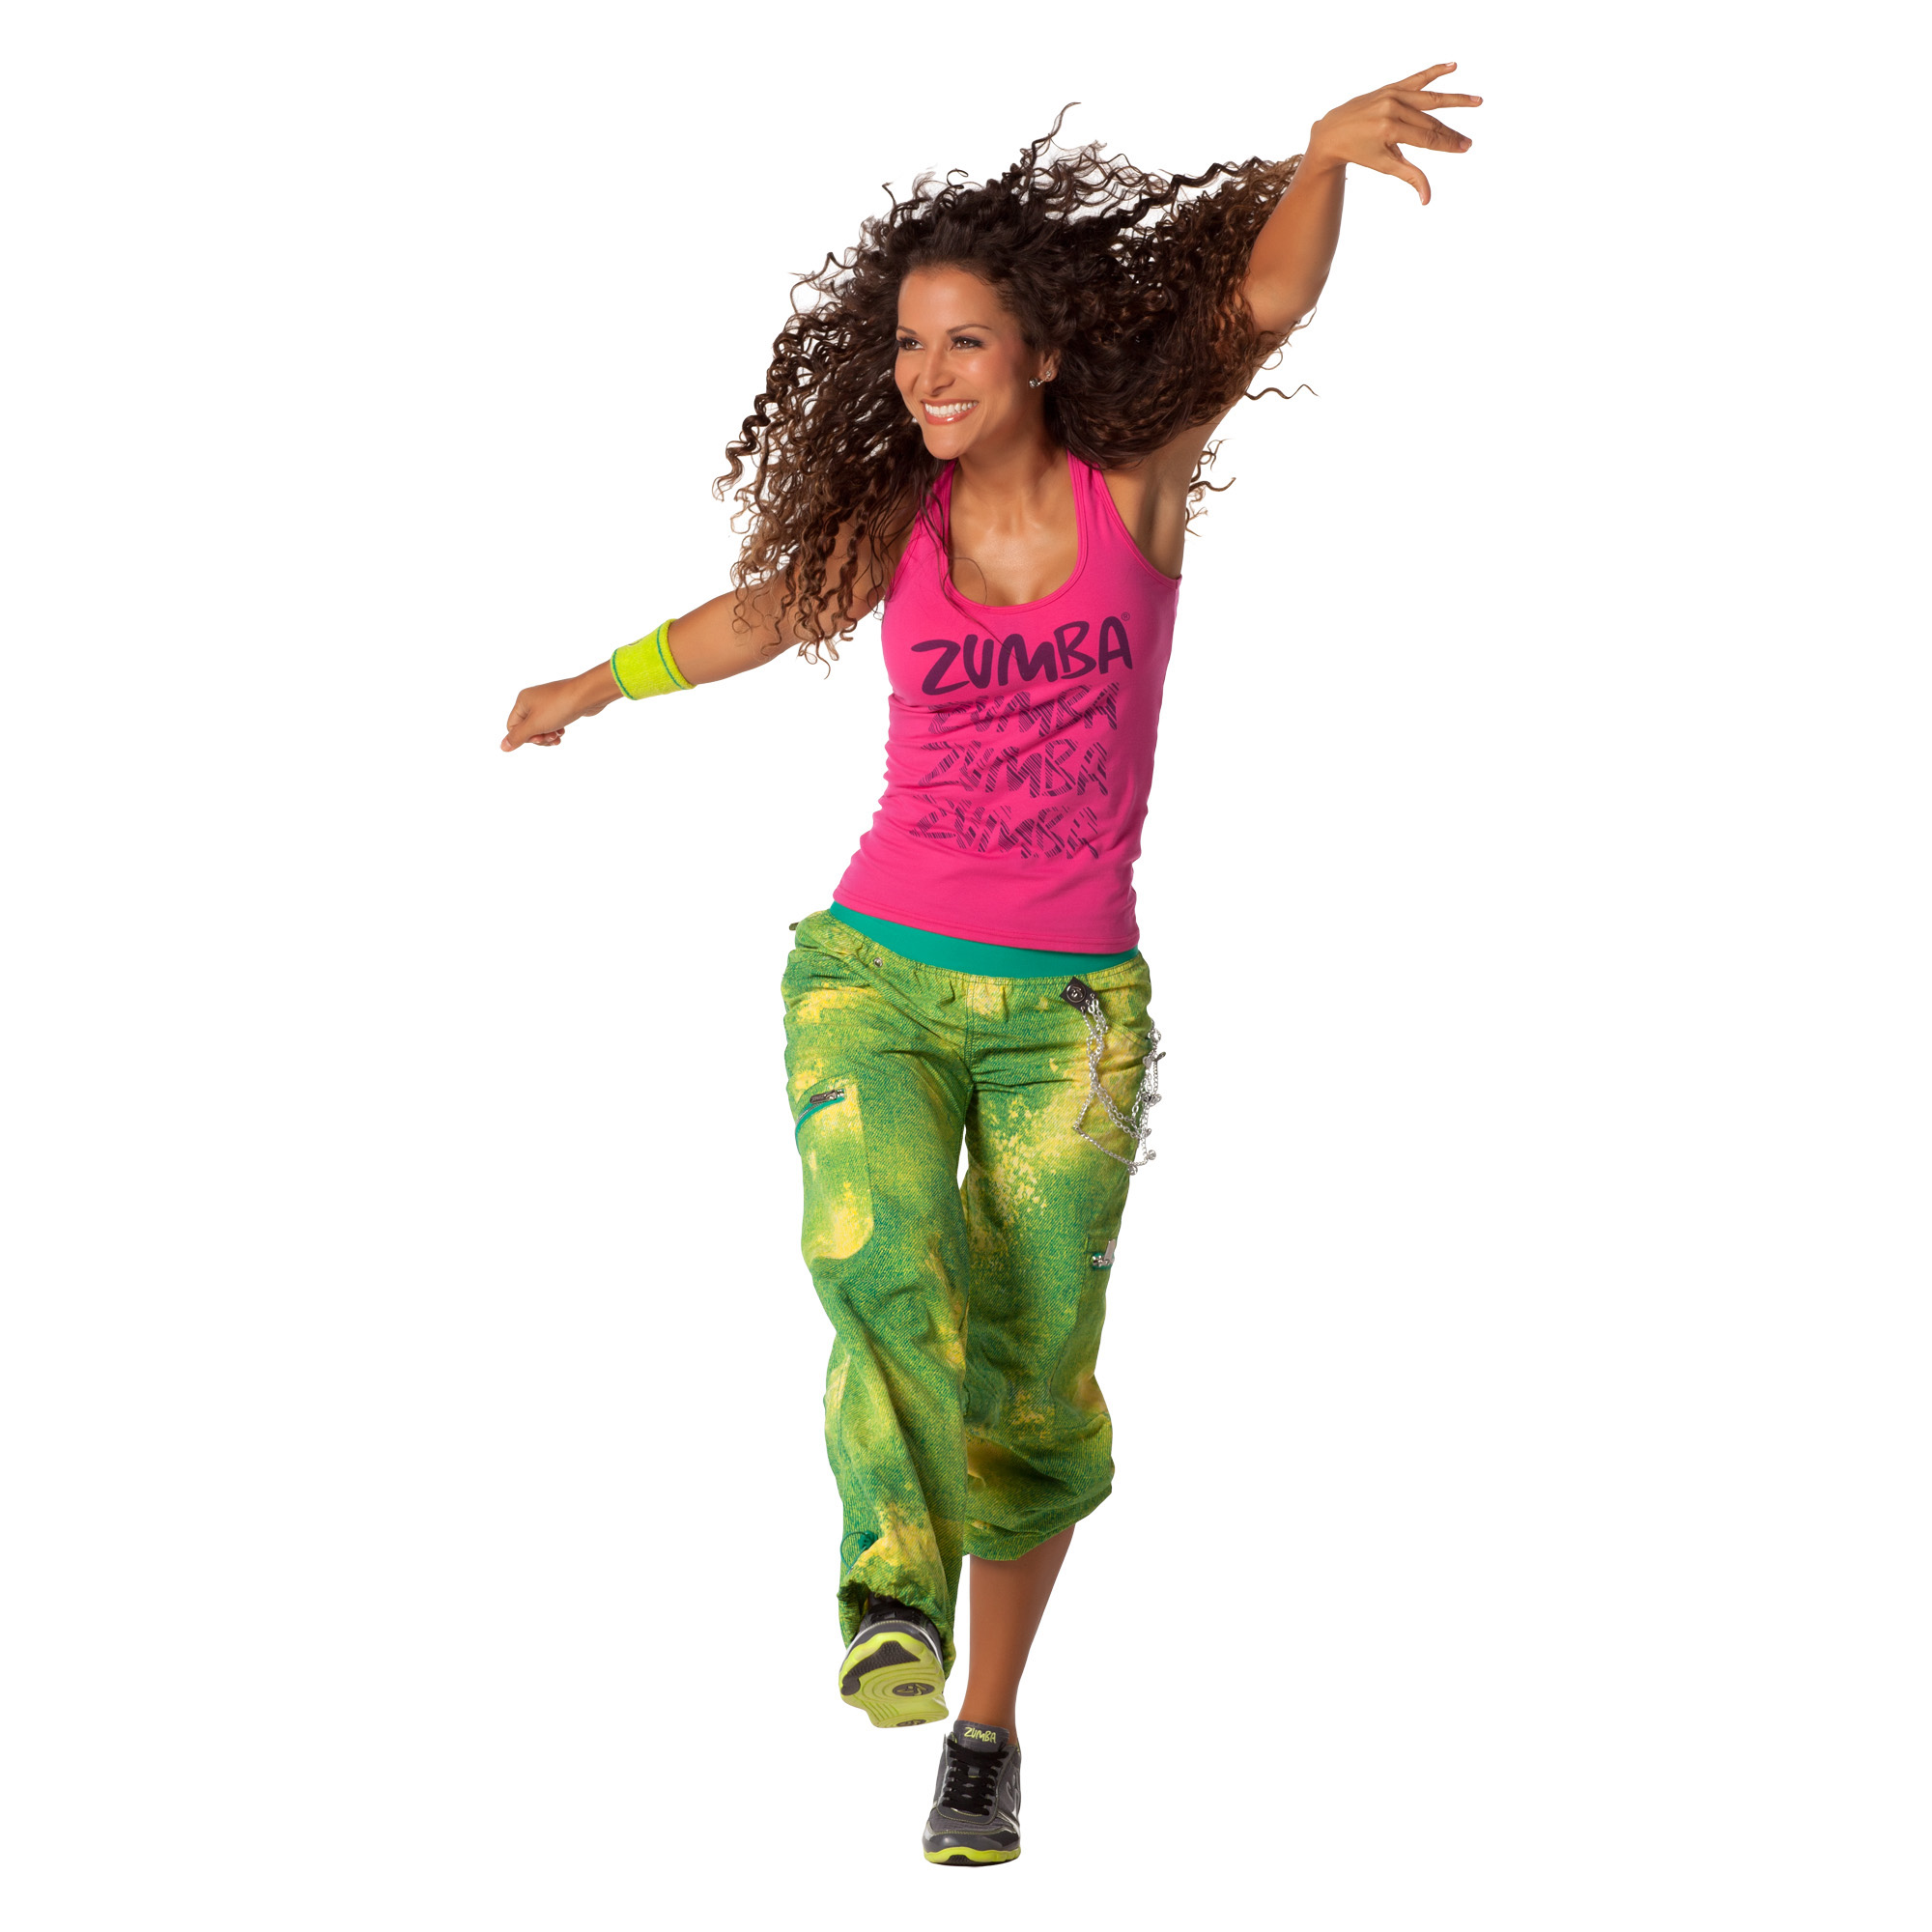 columbia association zumba master class with maria. Black Bedroom Furniture Sets. Home Design Ideas